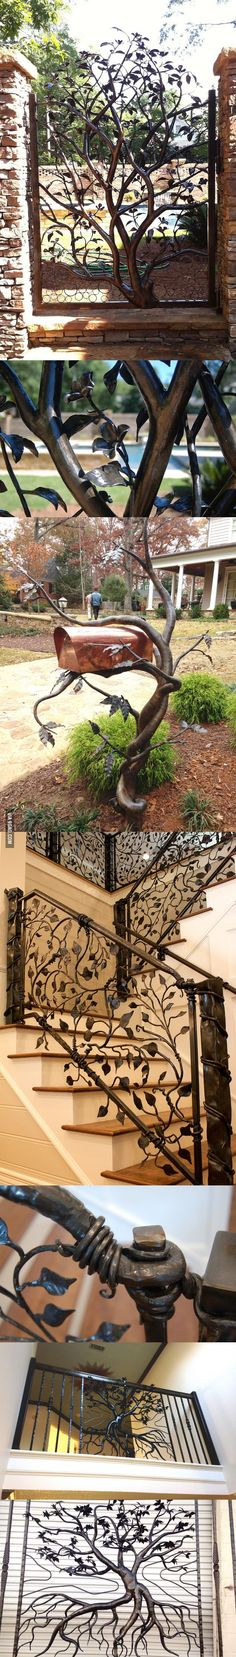 Awesome metal work